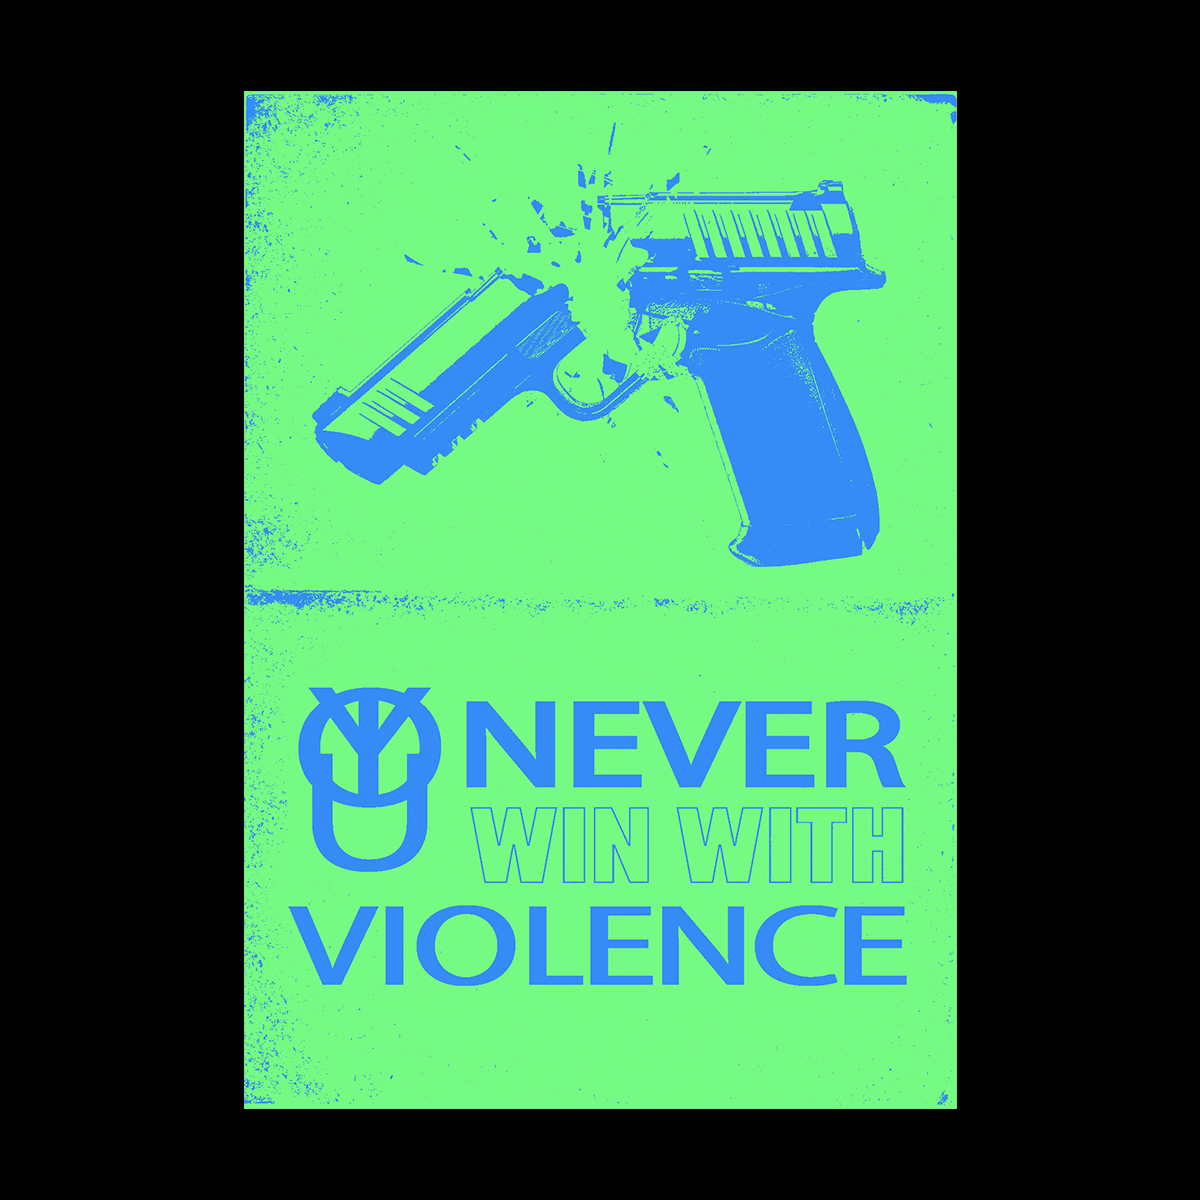 NeverWinWithViolence_poster_2.png